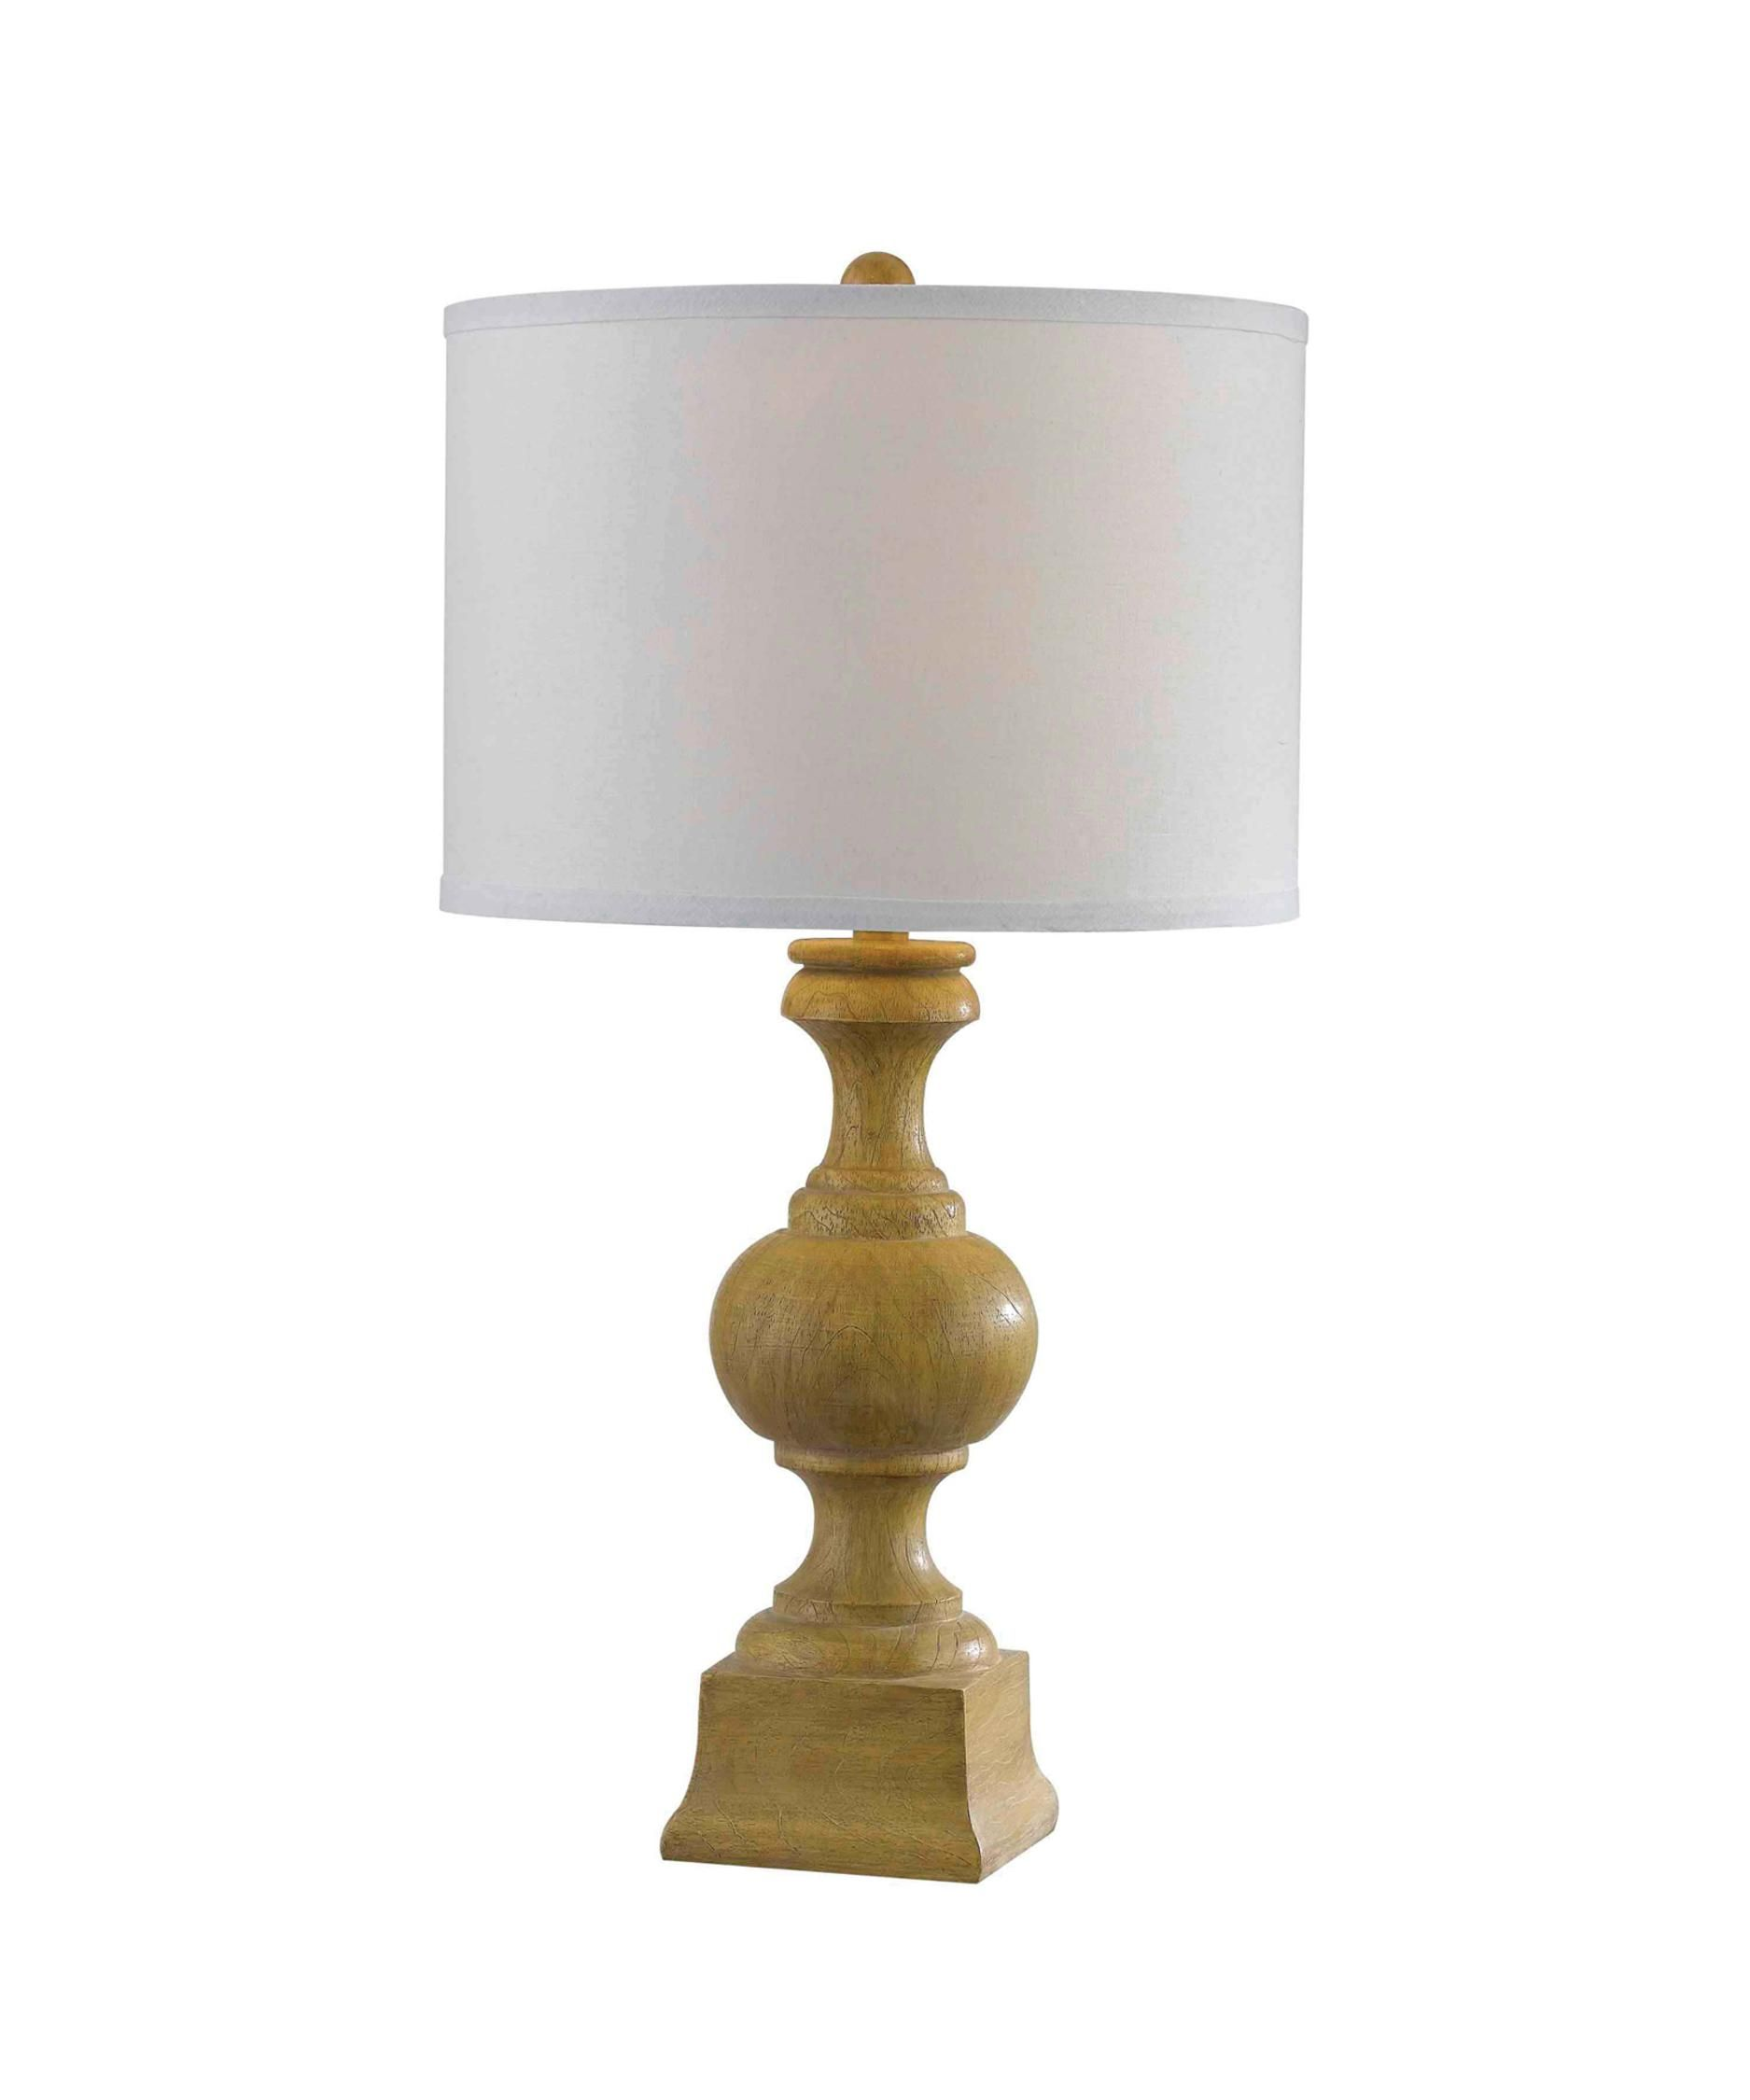 Kenroy Home 32090 Derby 28 Inch Table Lamp Capitol